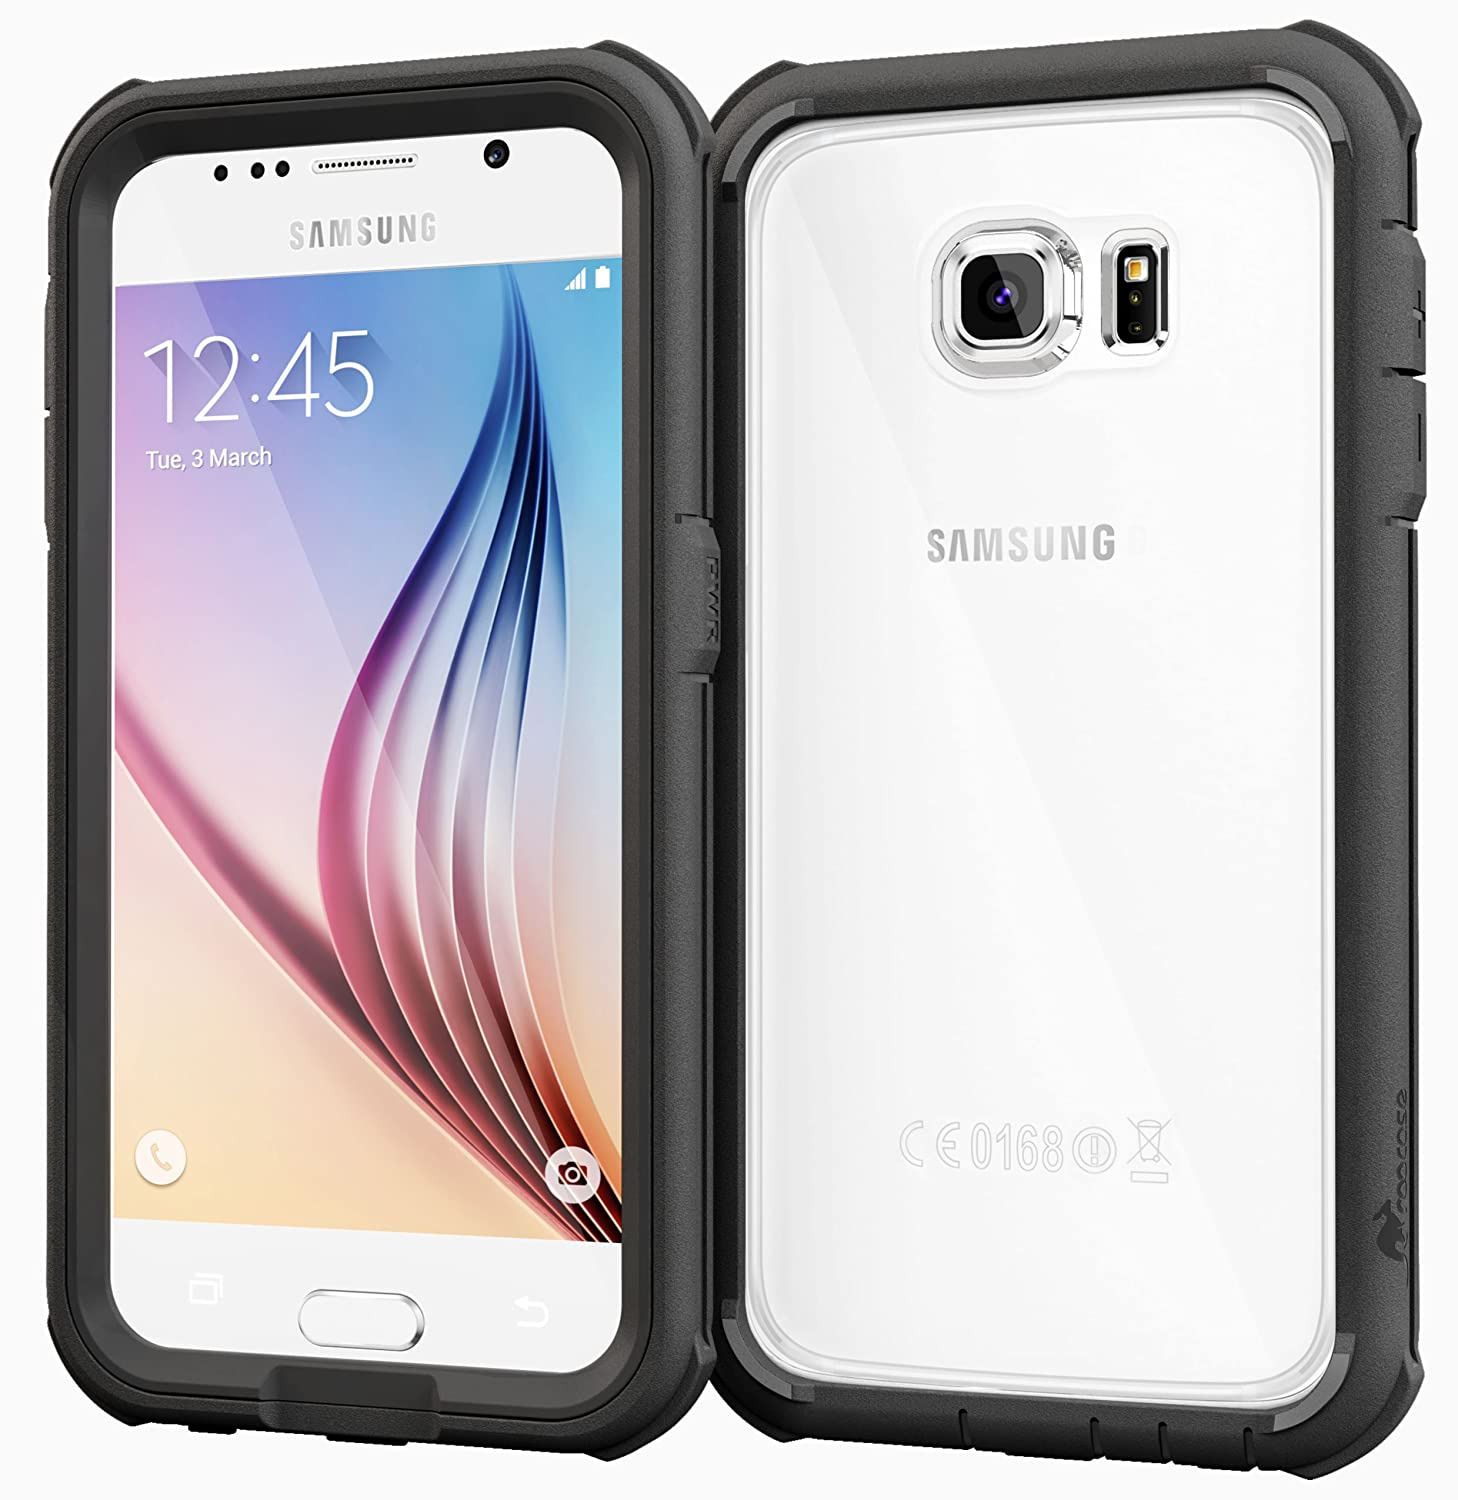 new and rug other tablets rugged southern basically town swop for samsung brand mobile smartphones huawei suburbs devices similiar or iphone cape phone western